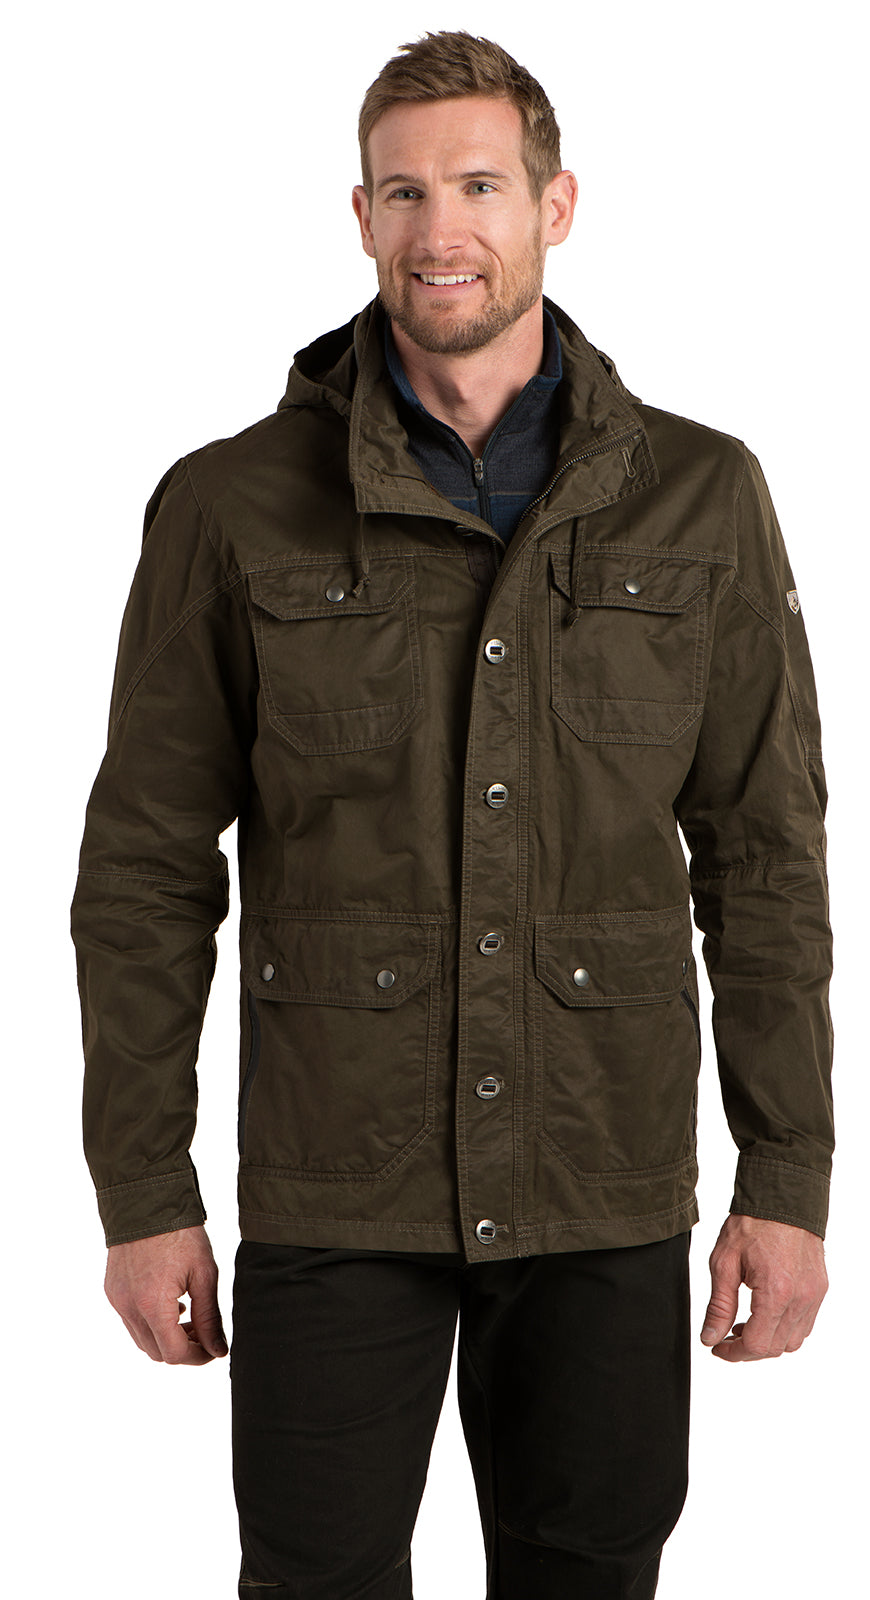 Kuhl Kollusion Jacket for Men in Turkish Coffee